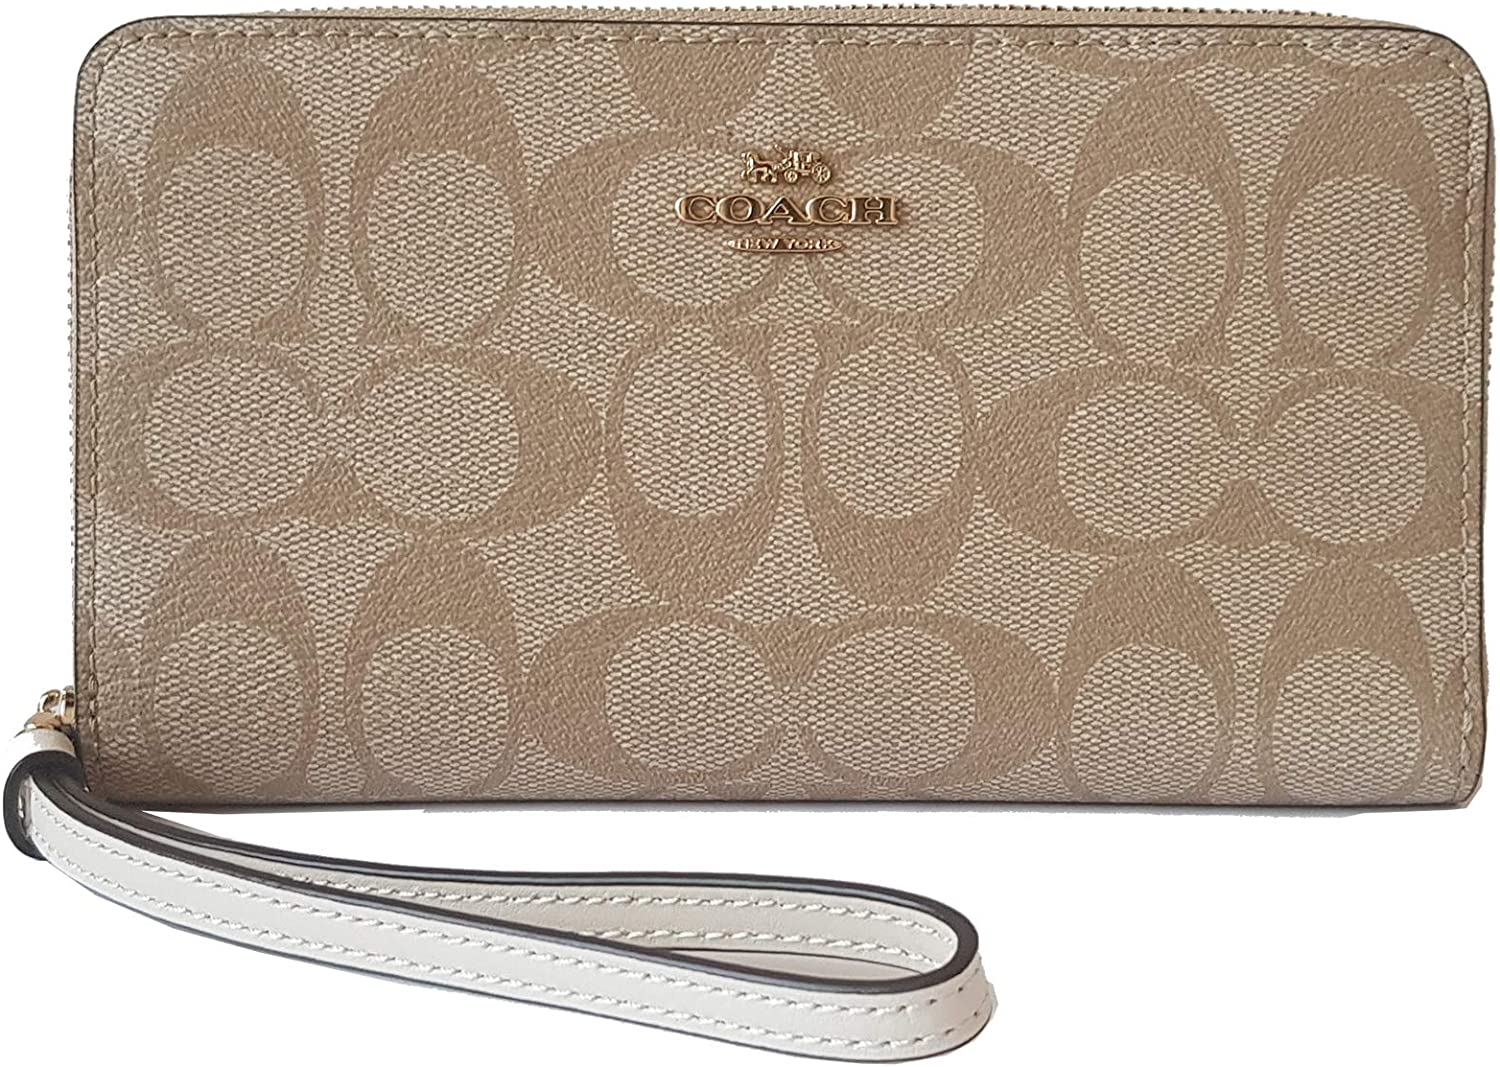 Coach Signature Large Leather Phone Wallet - #F73418